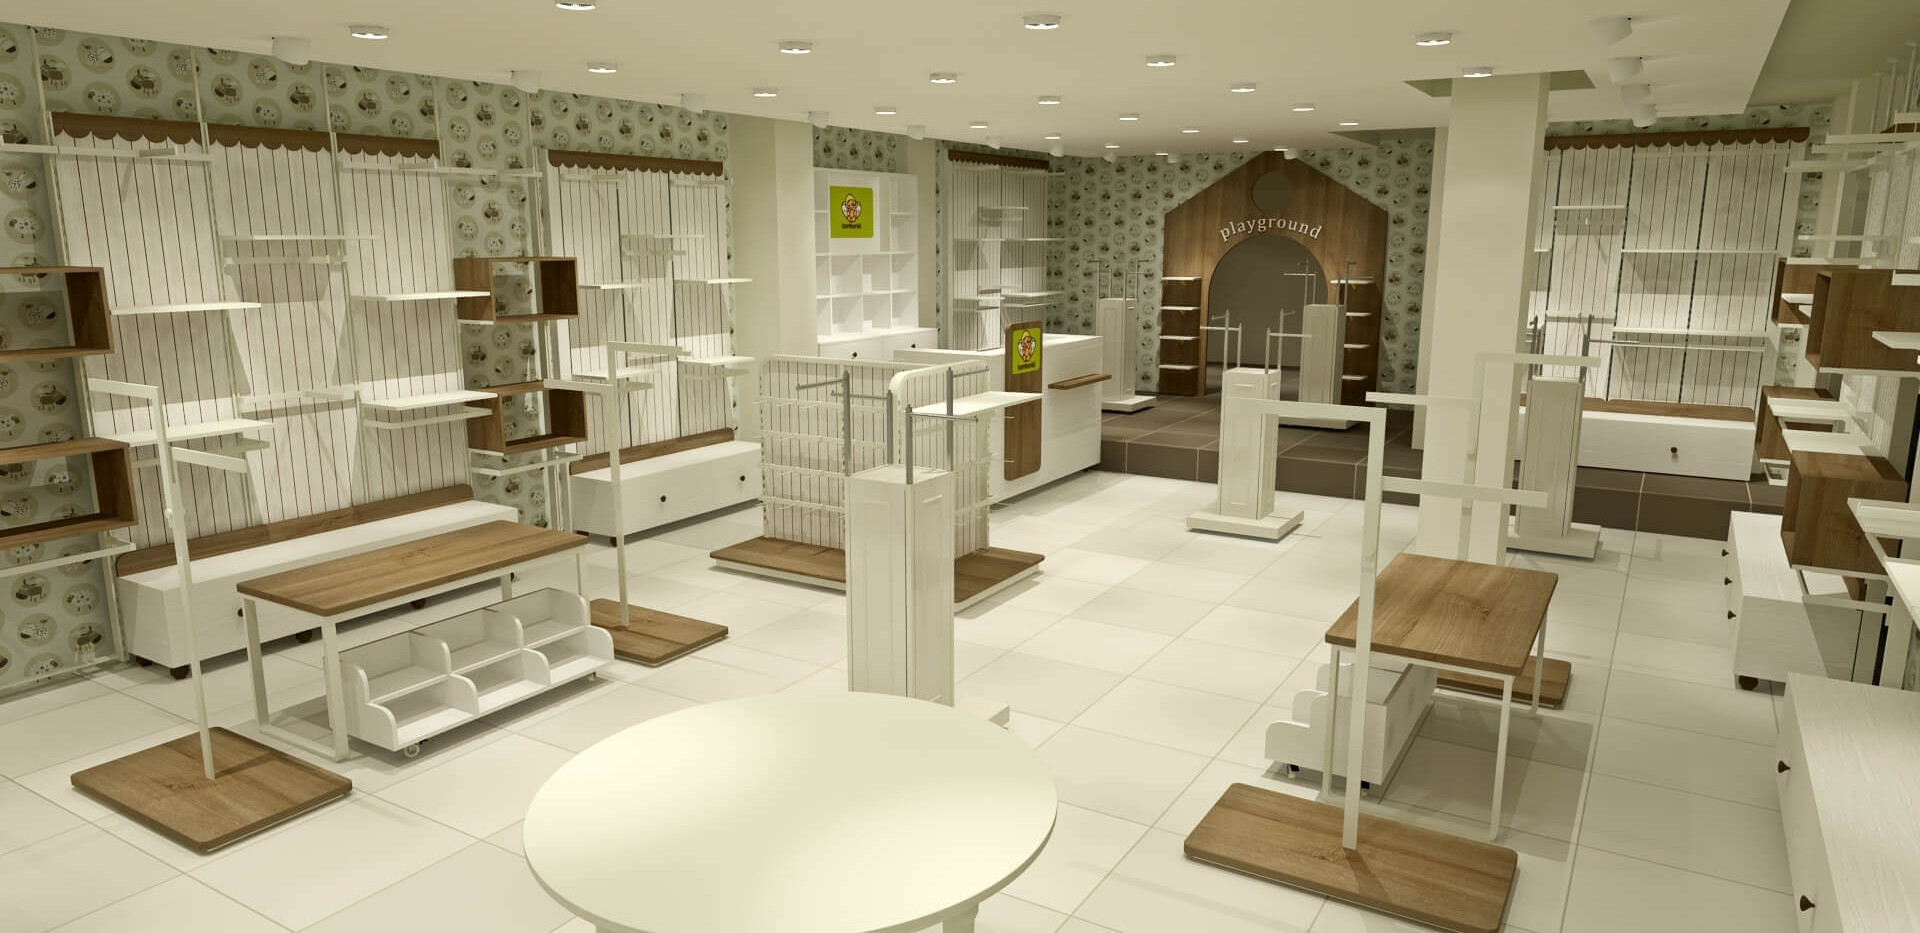 Bombonicci - Kids Store Shop Design-1.jp